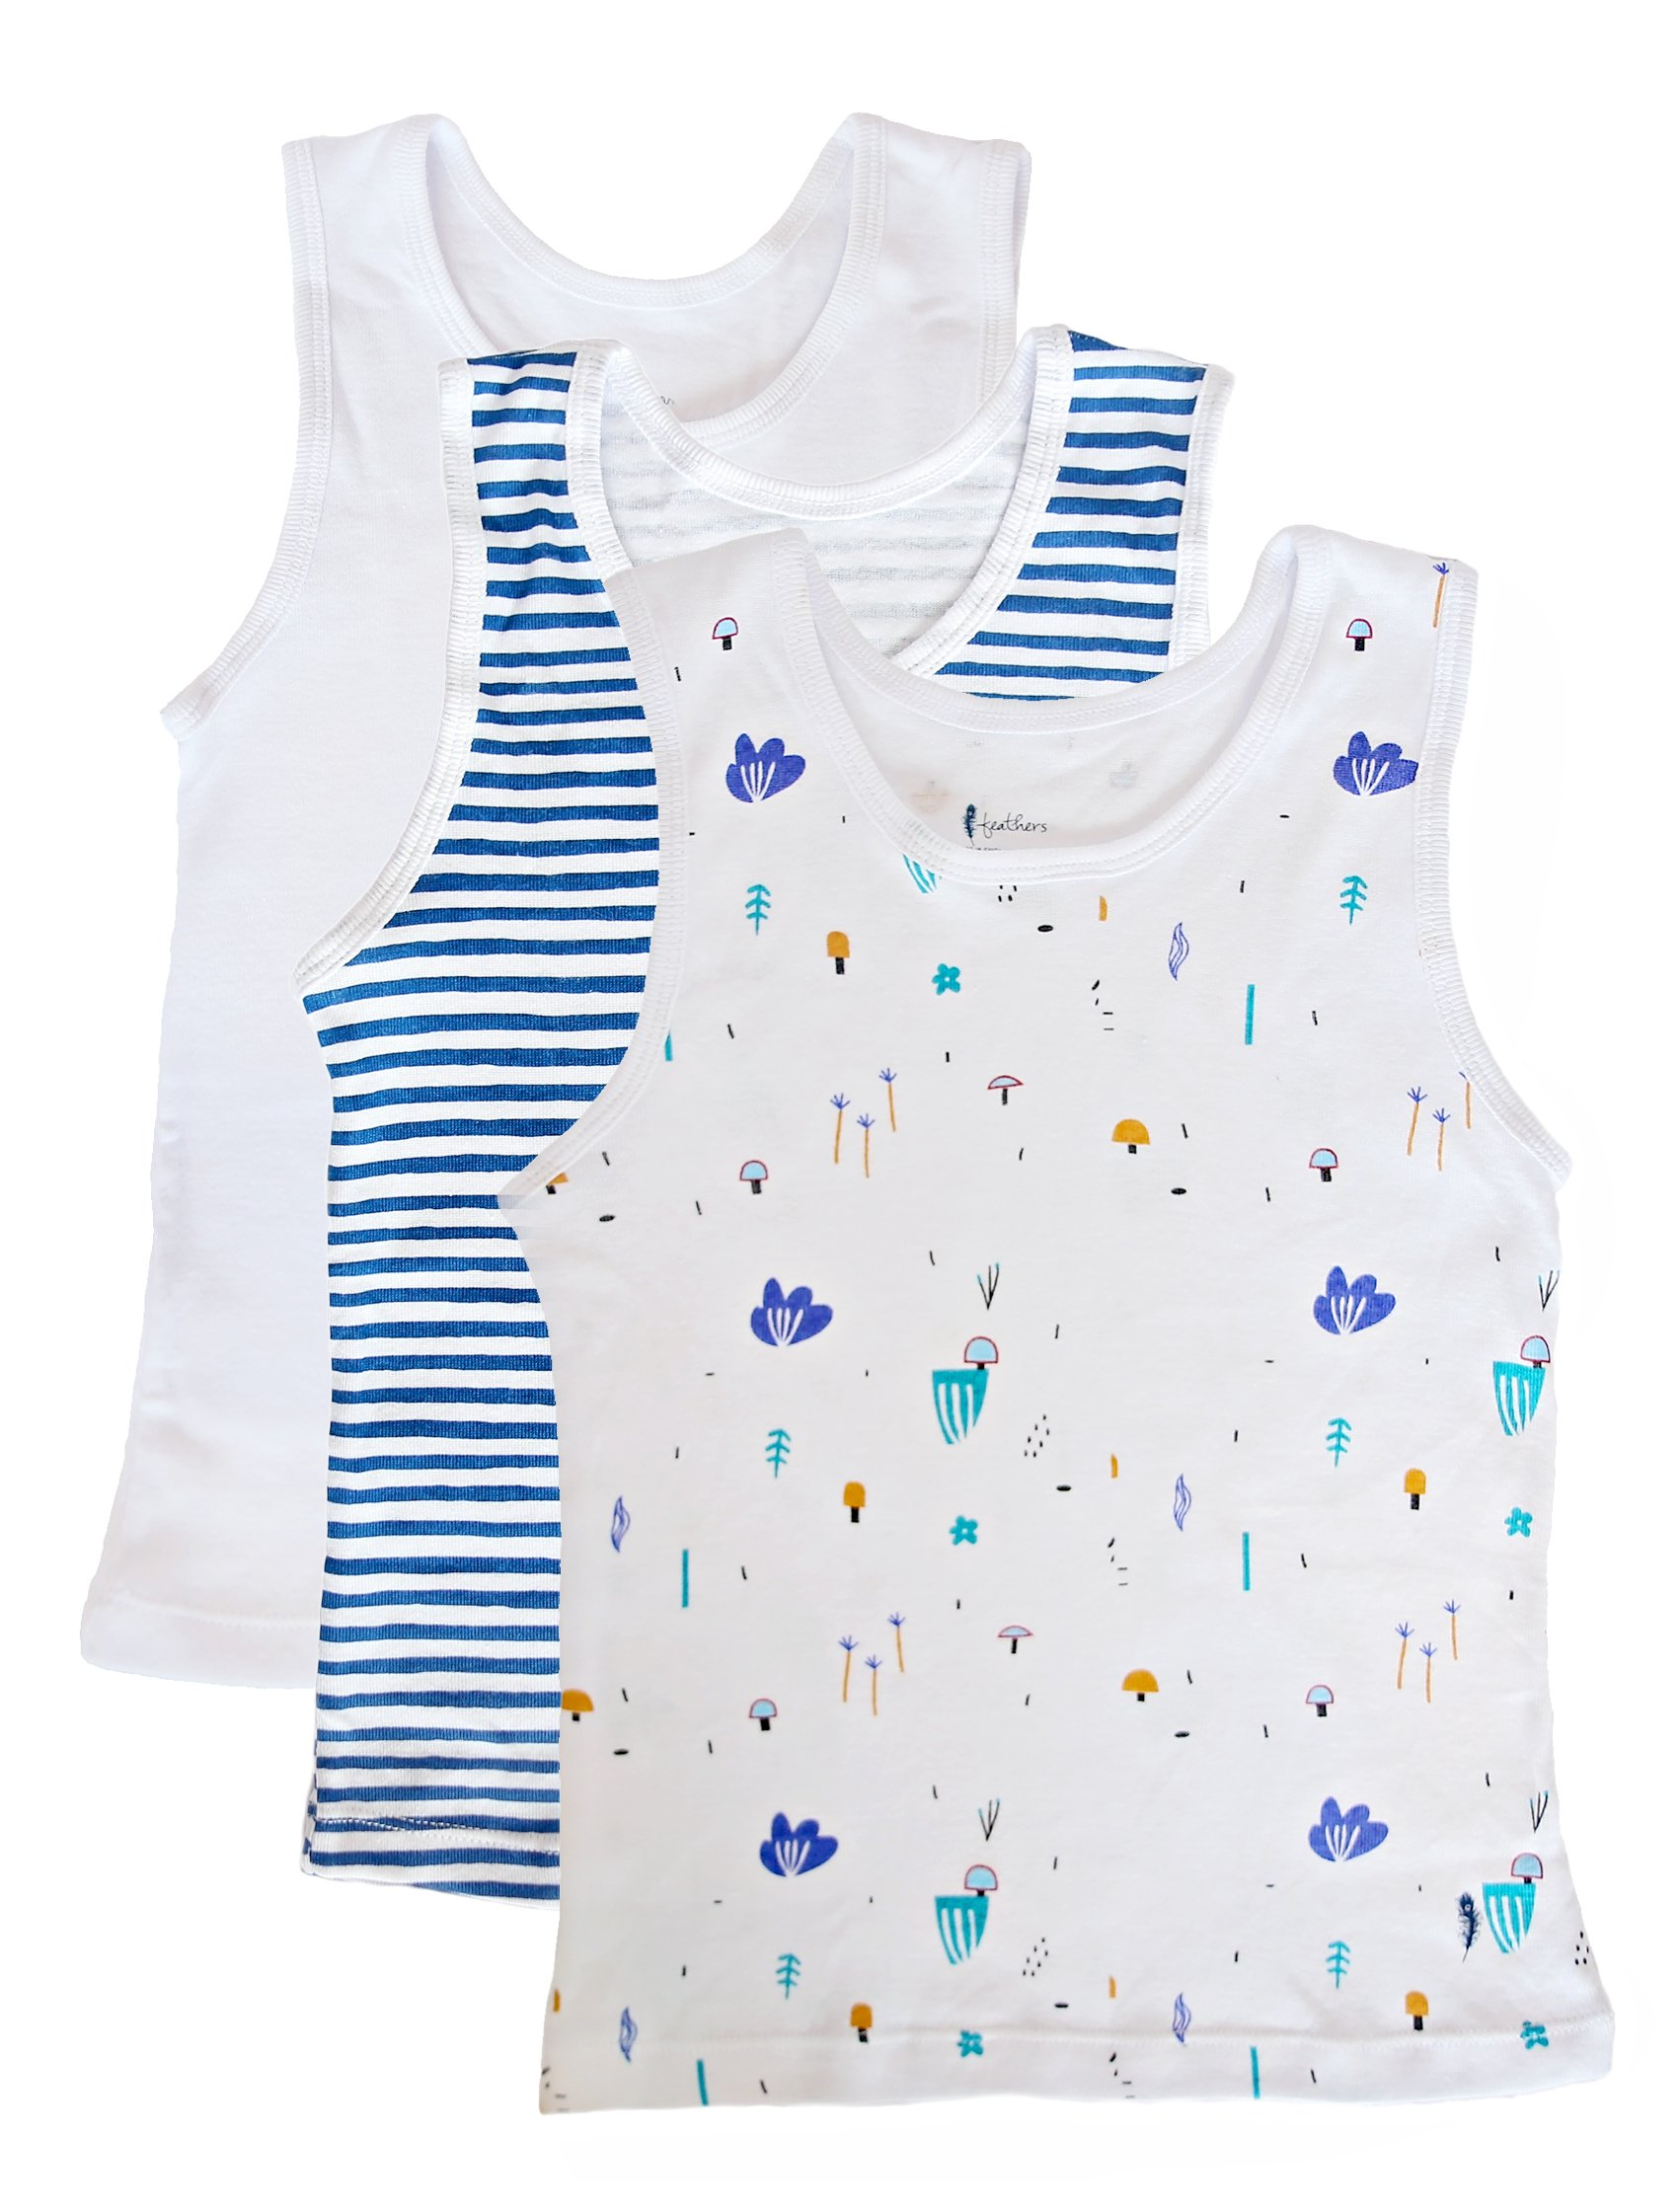 78f72c6fe989e0 Feathers Boys Botany Print set Tank 100% cotton super soft Tagless  Undershirts 3-Pack